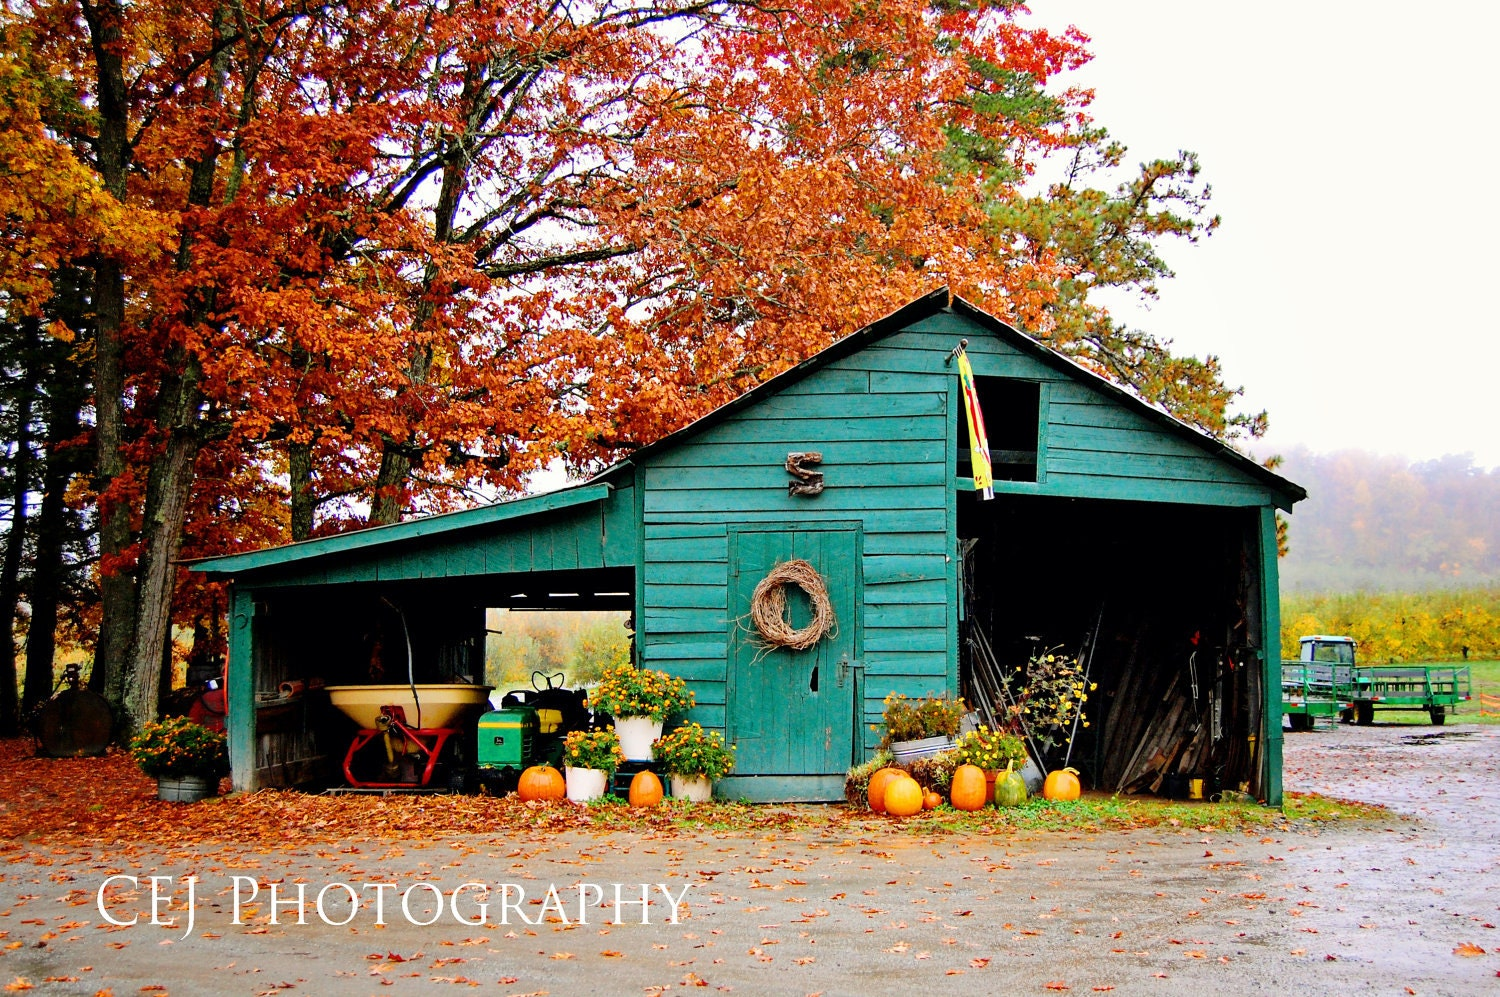 The Green Barn - CEJPhotography